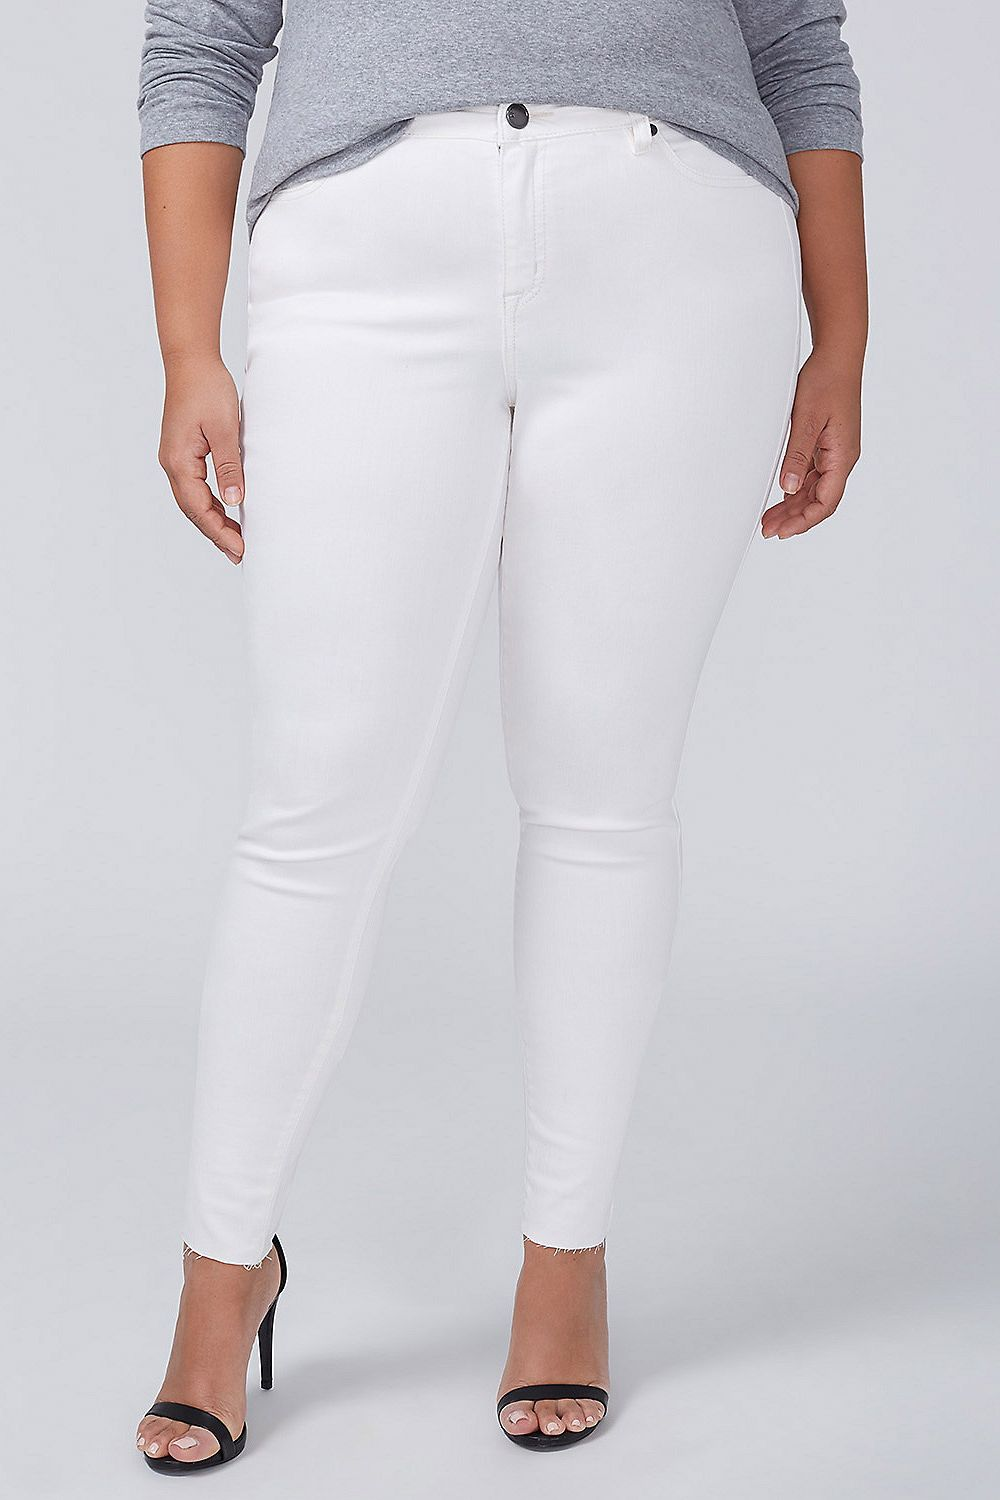 f772508f154 Lane Bryant Power Pockets Super Stretch Skinny White Ankle Jean